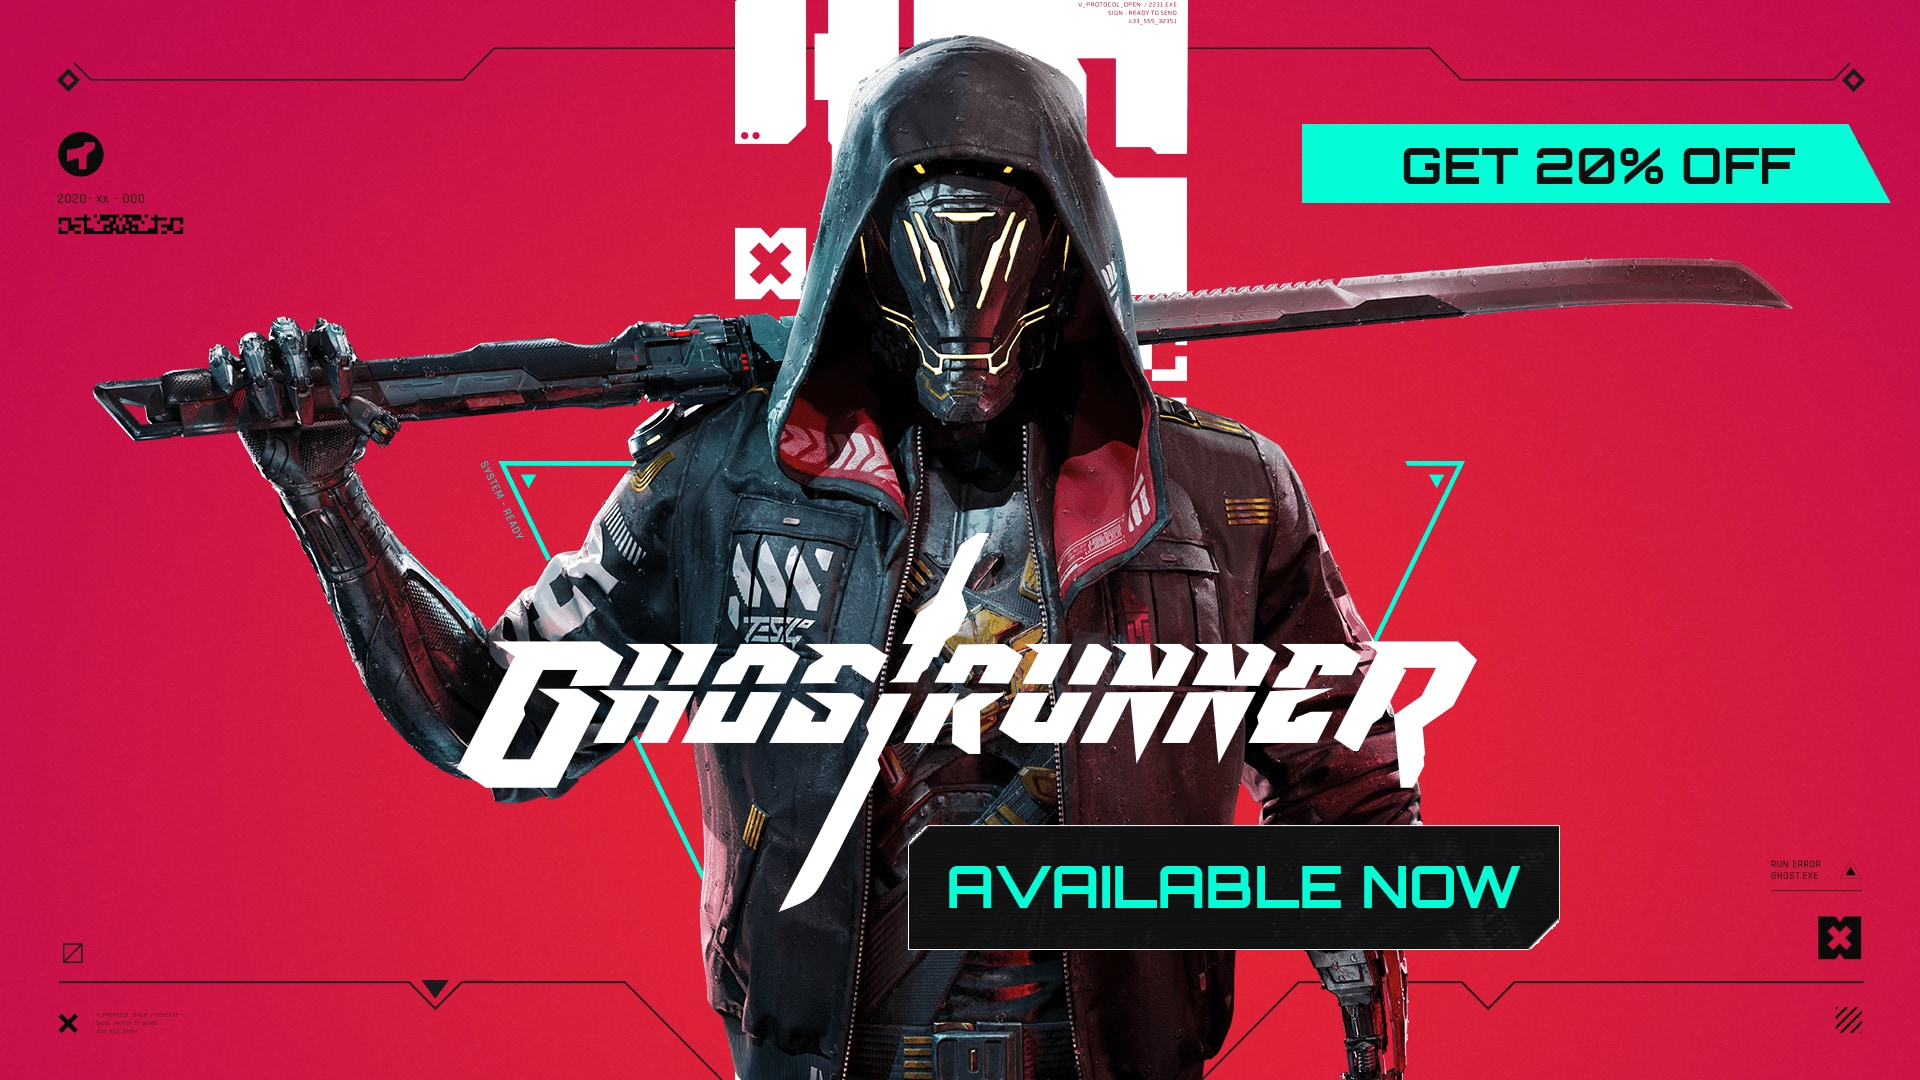 Ghostrunner available discount